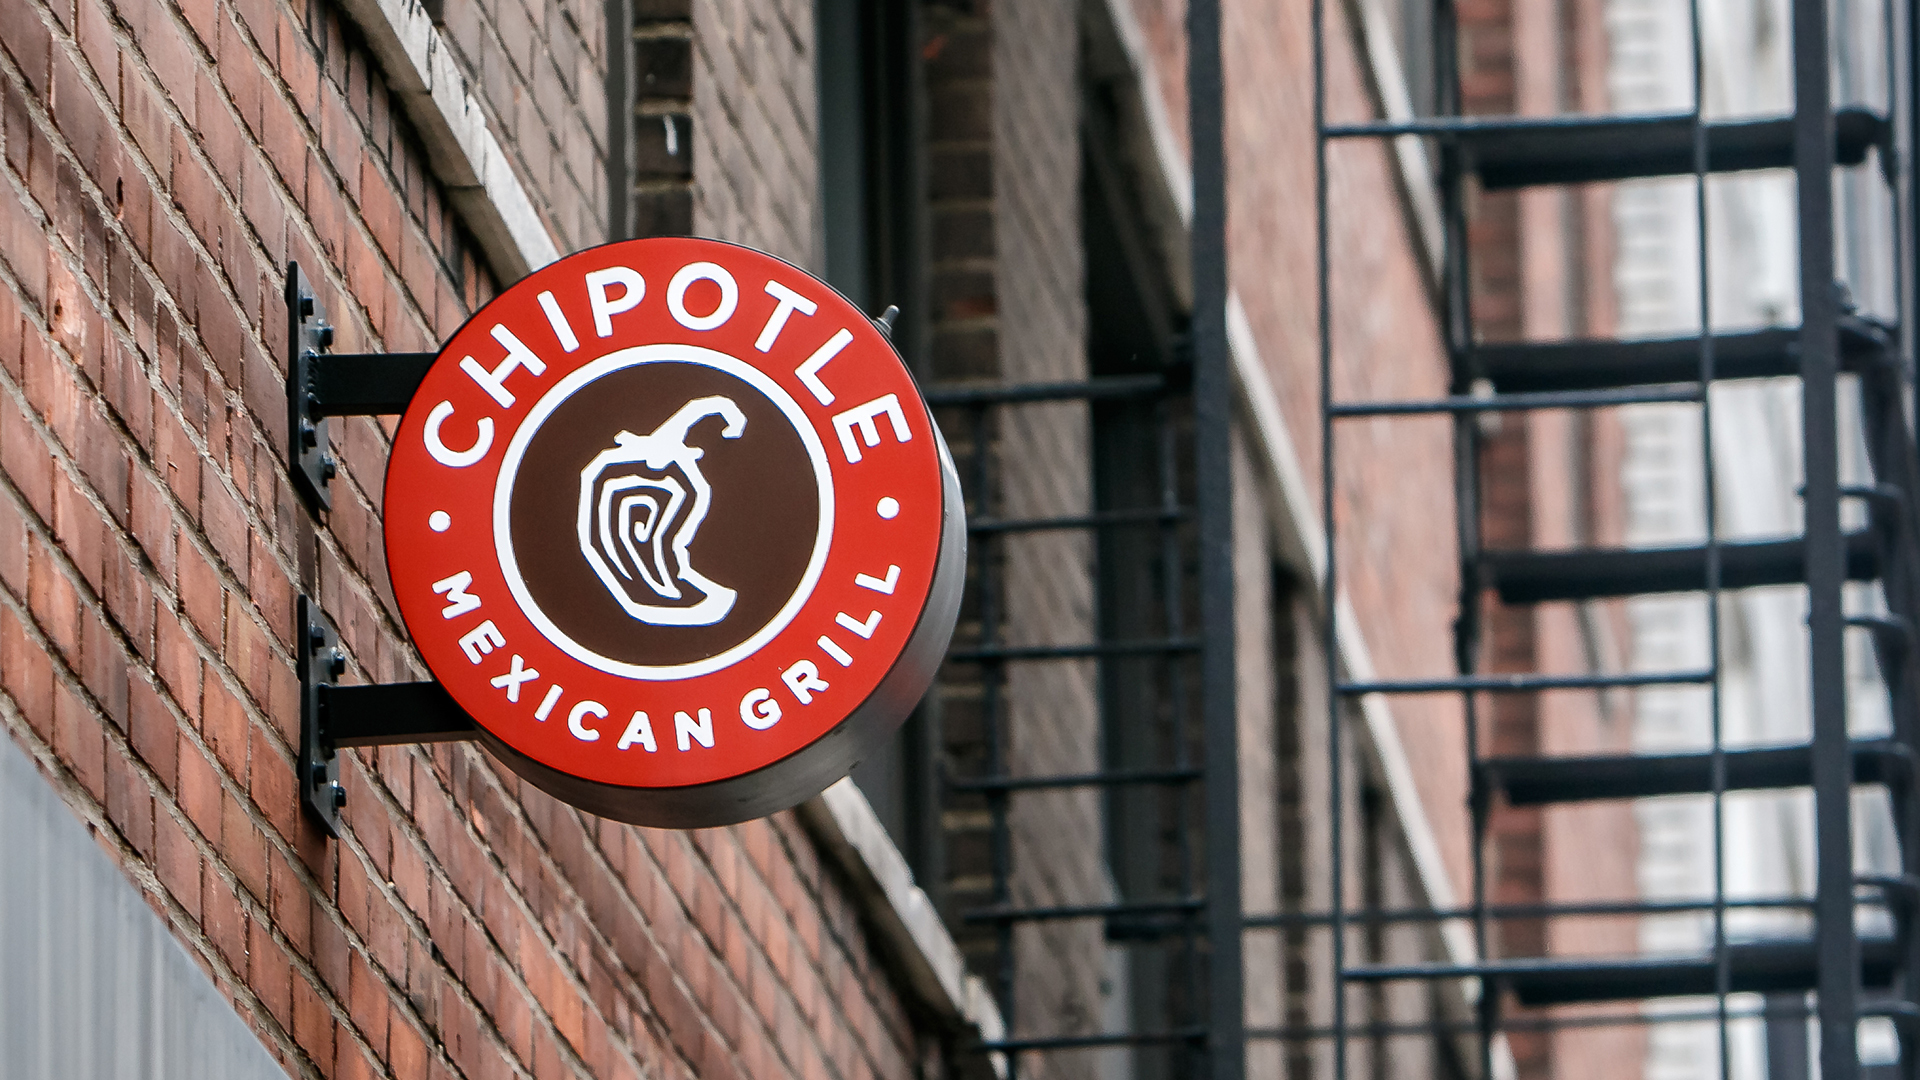 Chipotle Price Target Gets Boosted to 900 at SunTrust   TheStreet 1920x1080